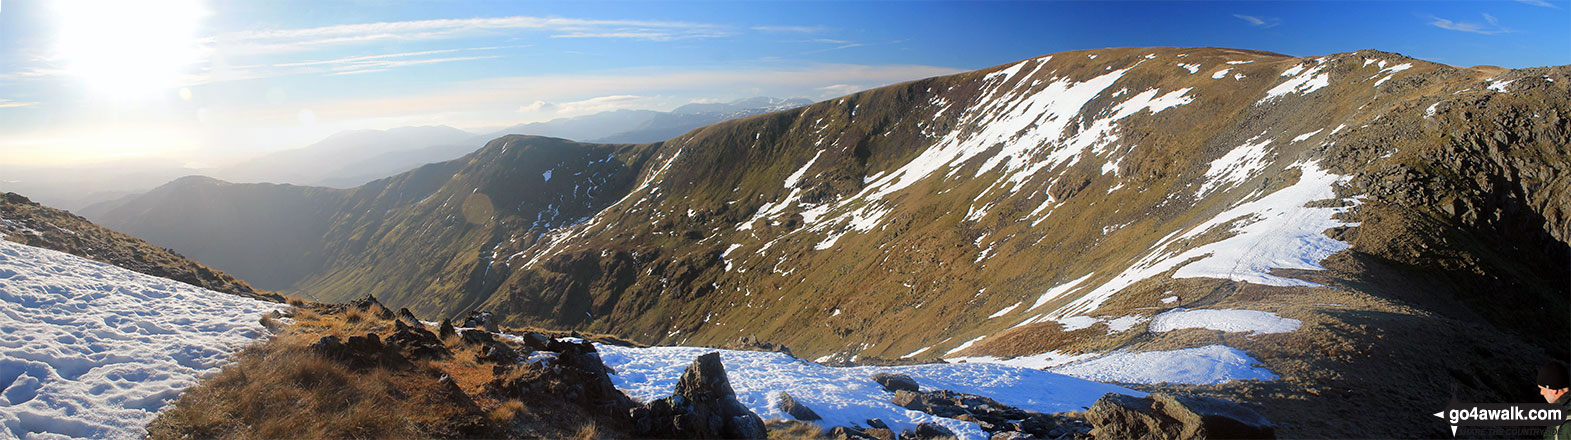 Heron Pike, Heron Pike (North Top), Great Rigg, Rydal Head and Fairfield from Hart Crag